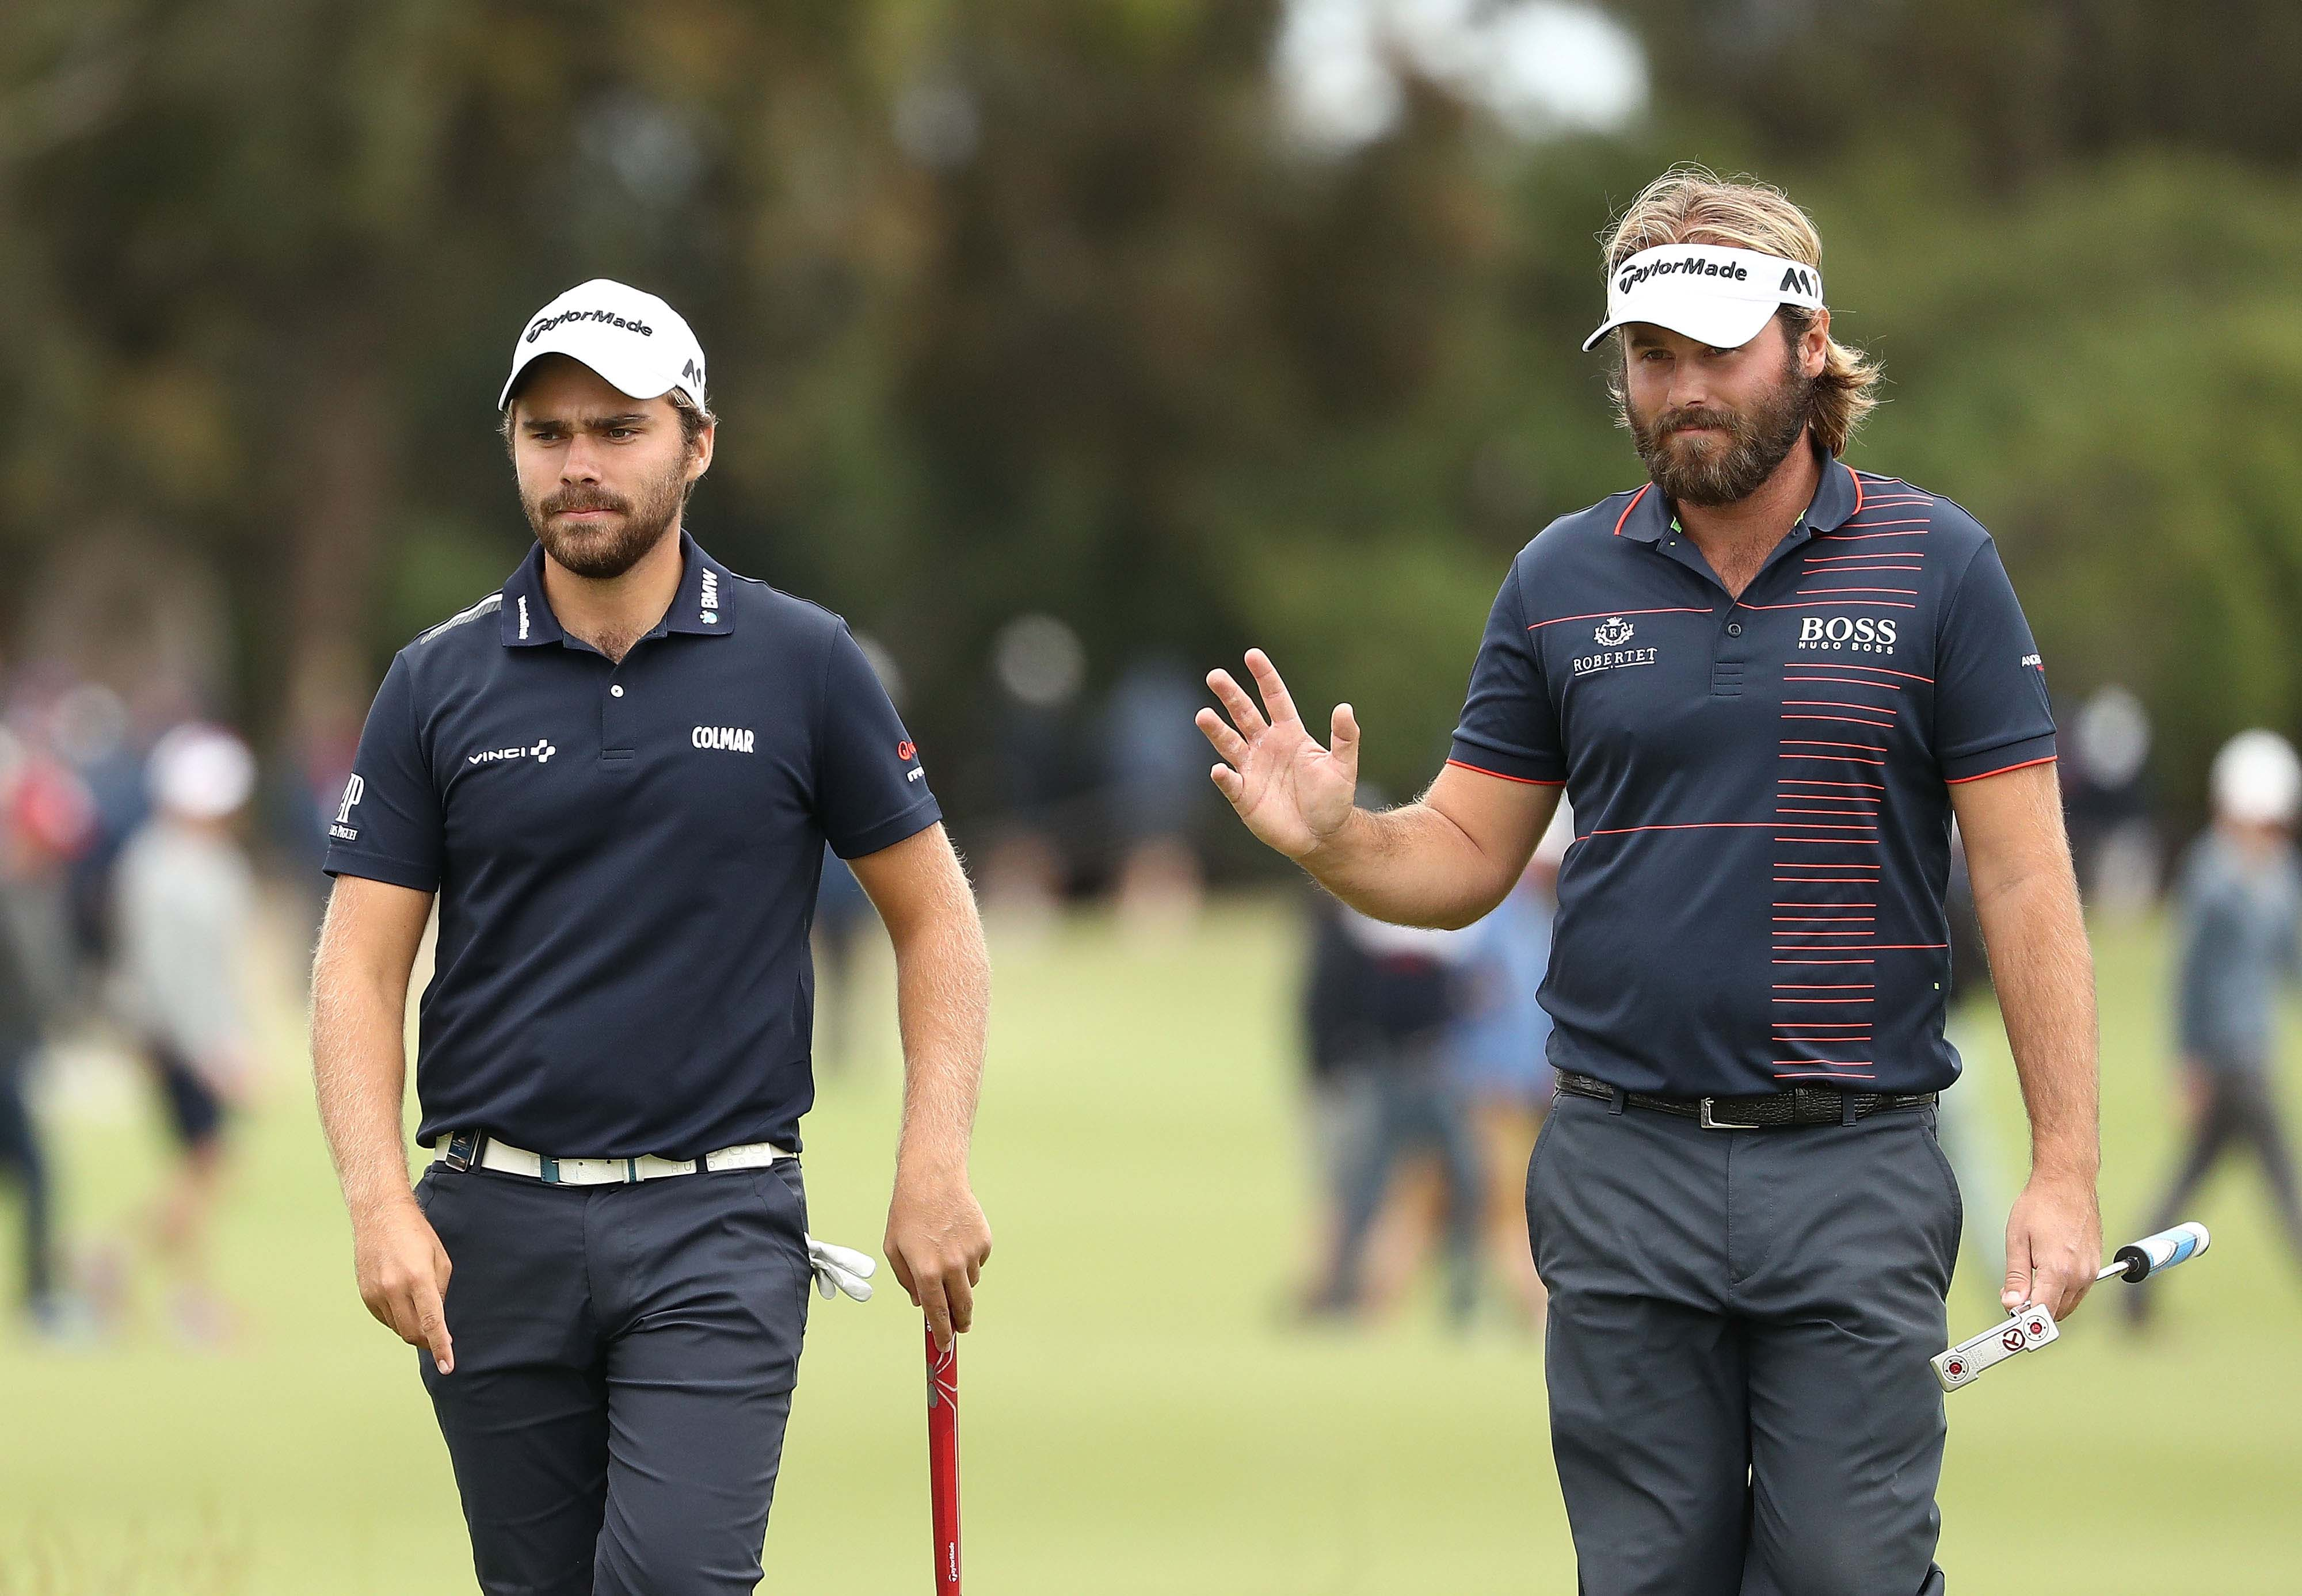 Romain Langasque and Victor Dubuisson